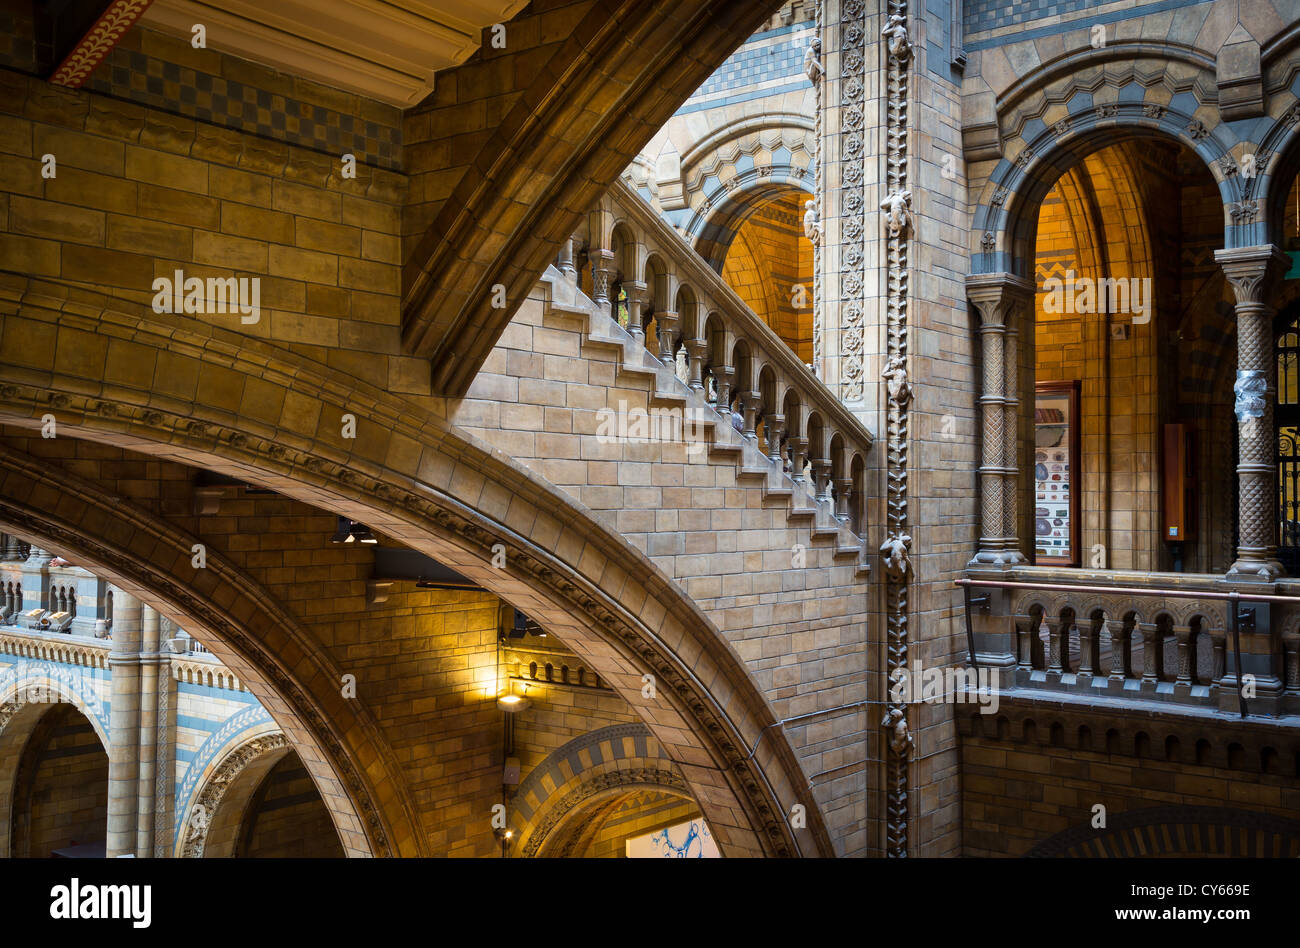 The Natural History Museum is on Exhibition Road, South Kensington, London, England - Stock Image